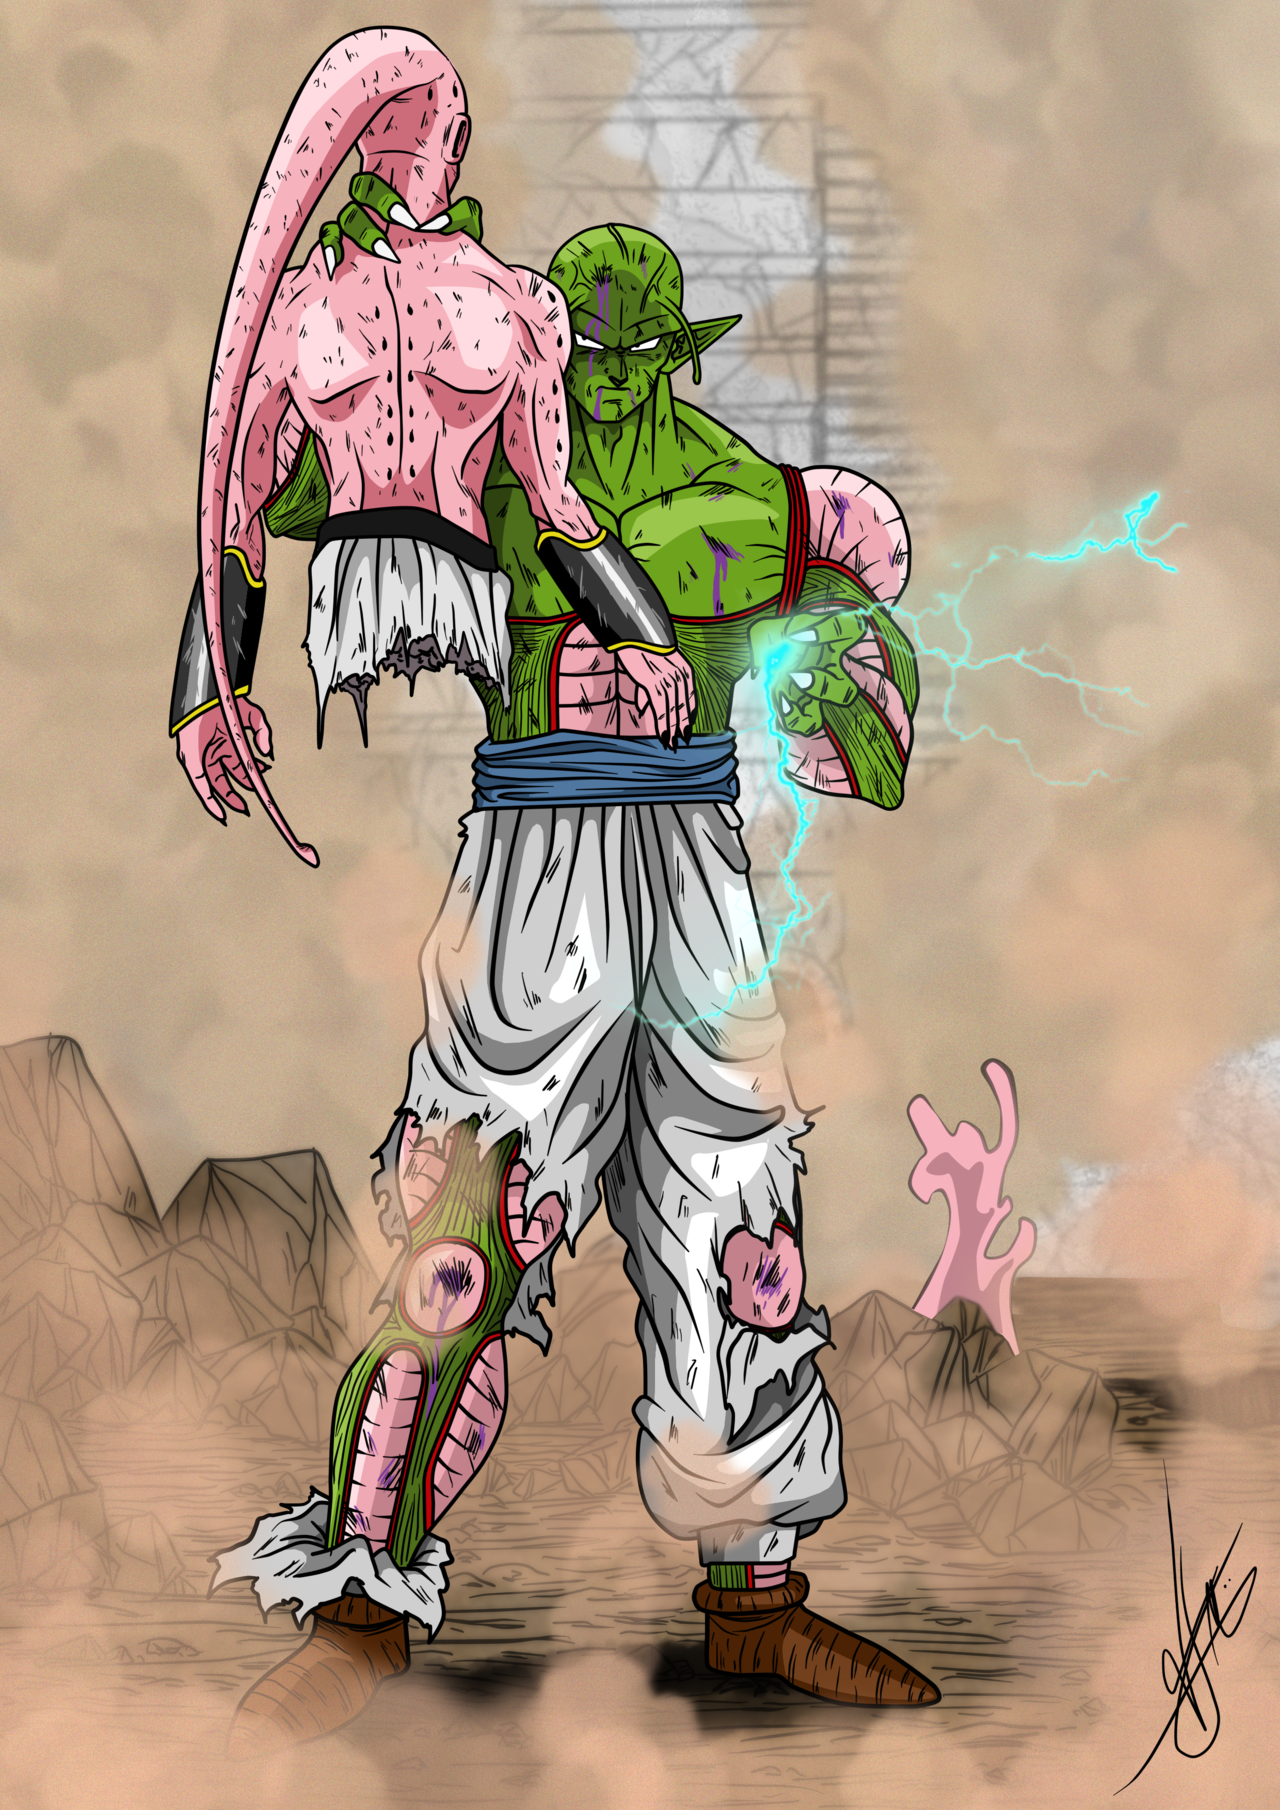 Dragon Ball Multiverse: 951 Color by Argelios on DeviantArt  |Dragon Ball Multiverse Gast